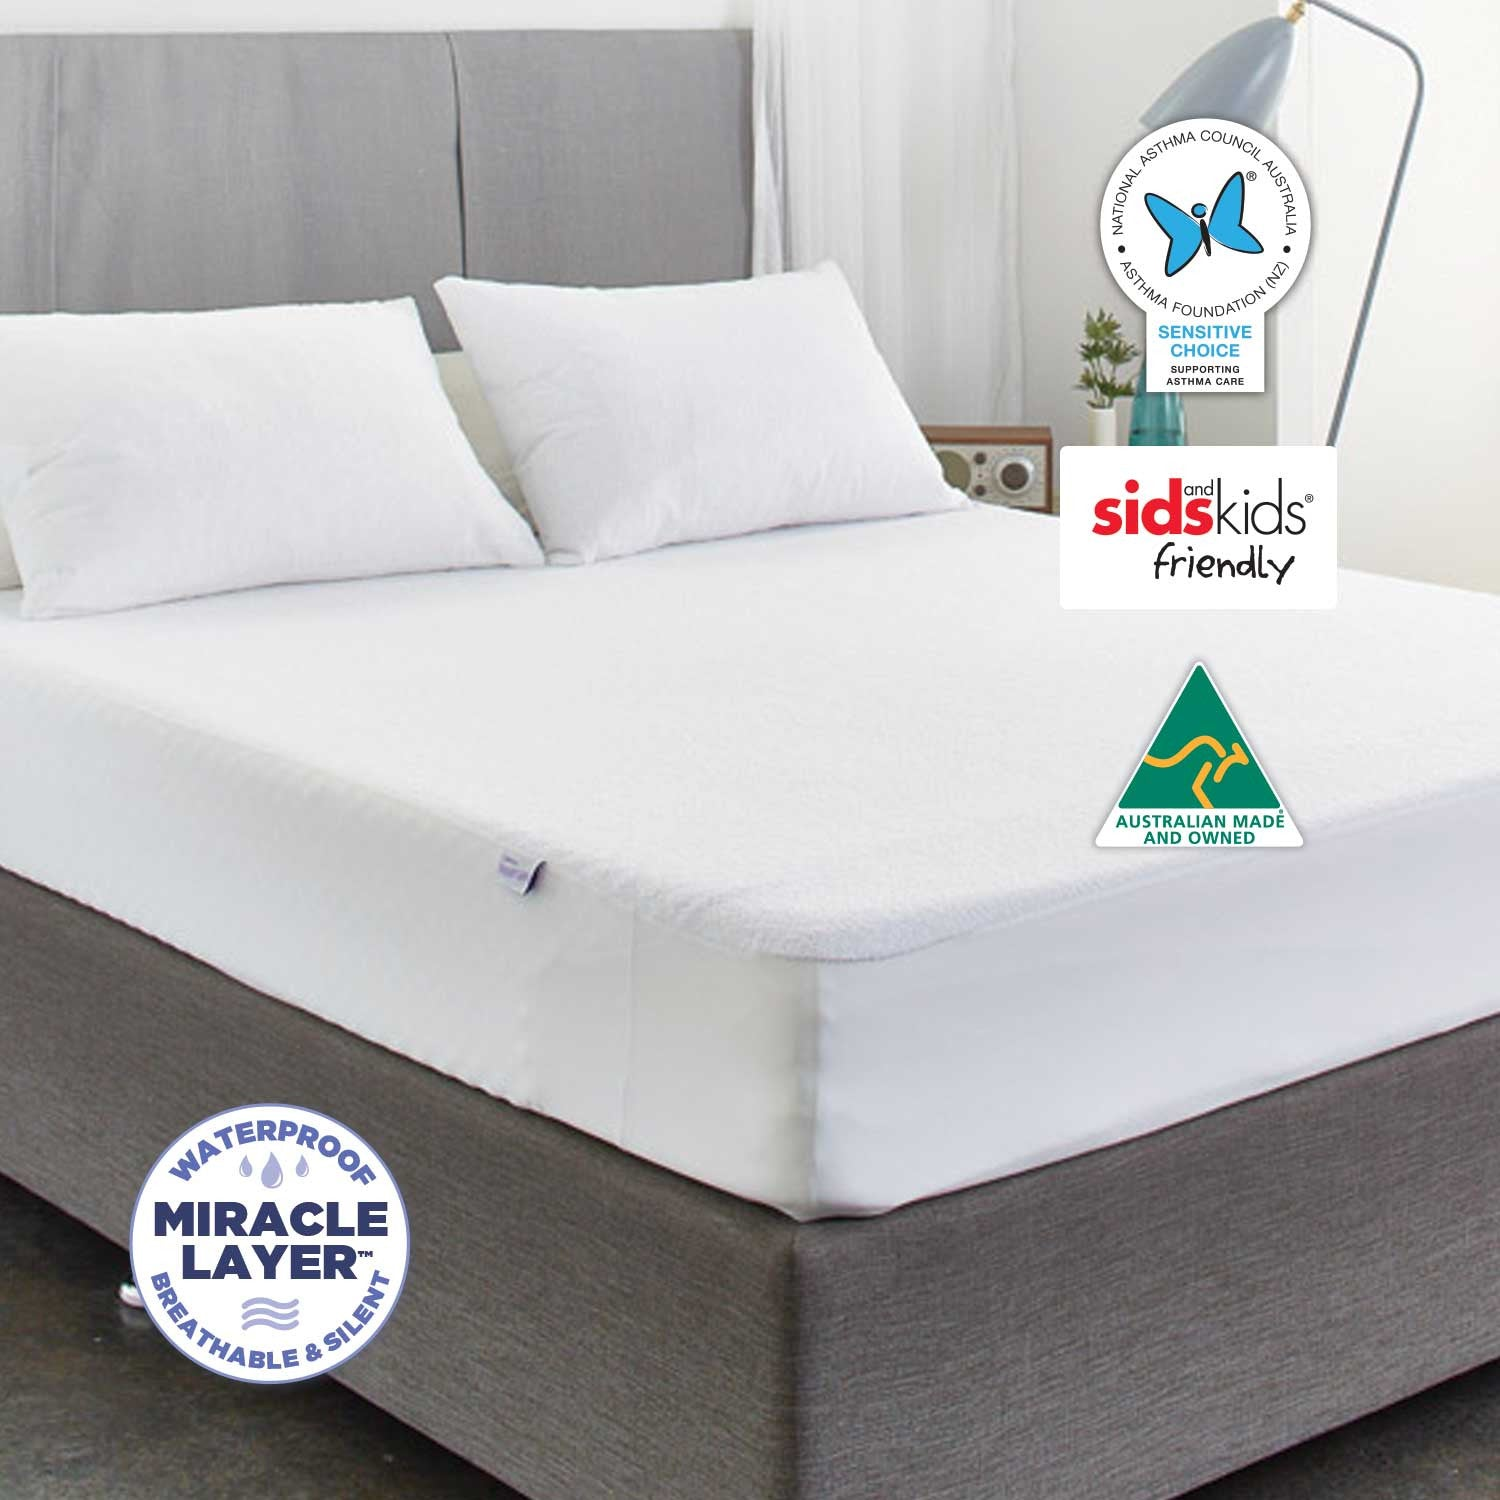 plush all flippable symbol foam size mattress double edison available sided in sizes custom mattresses